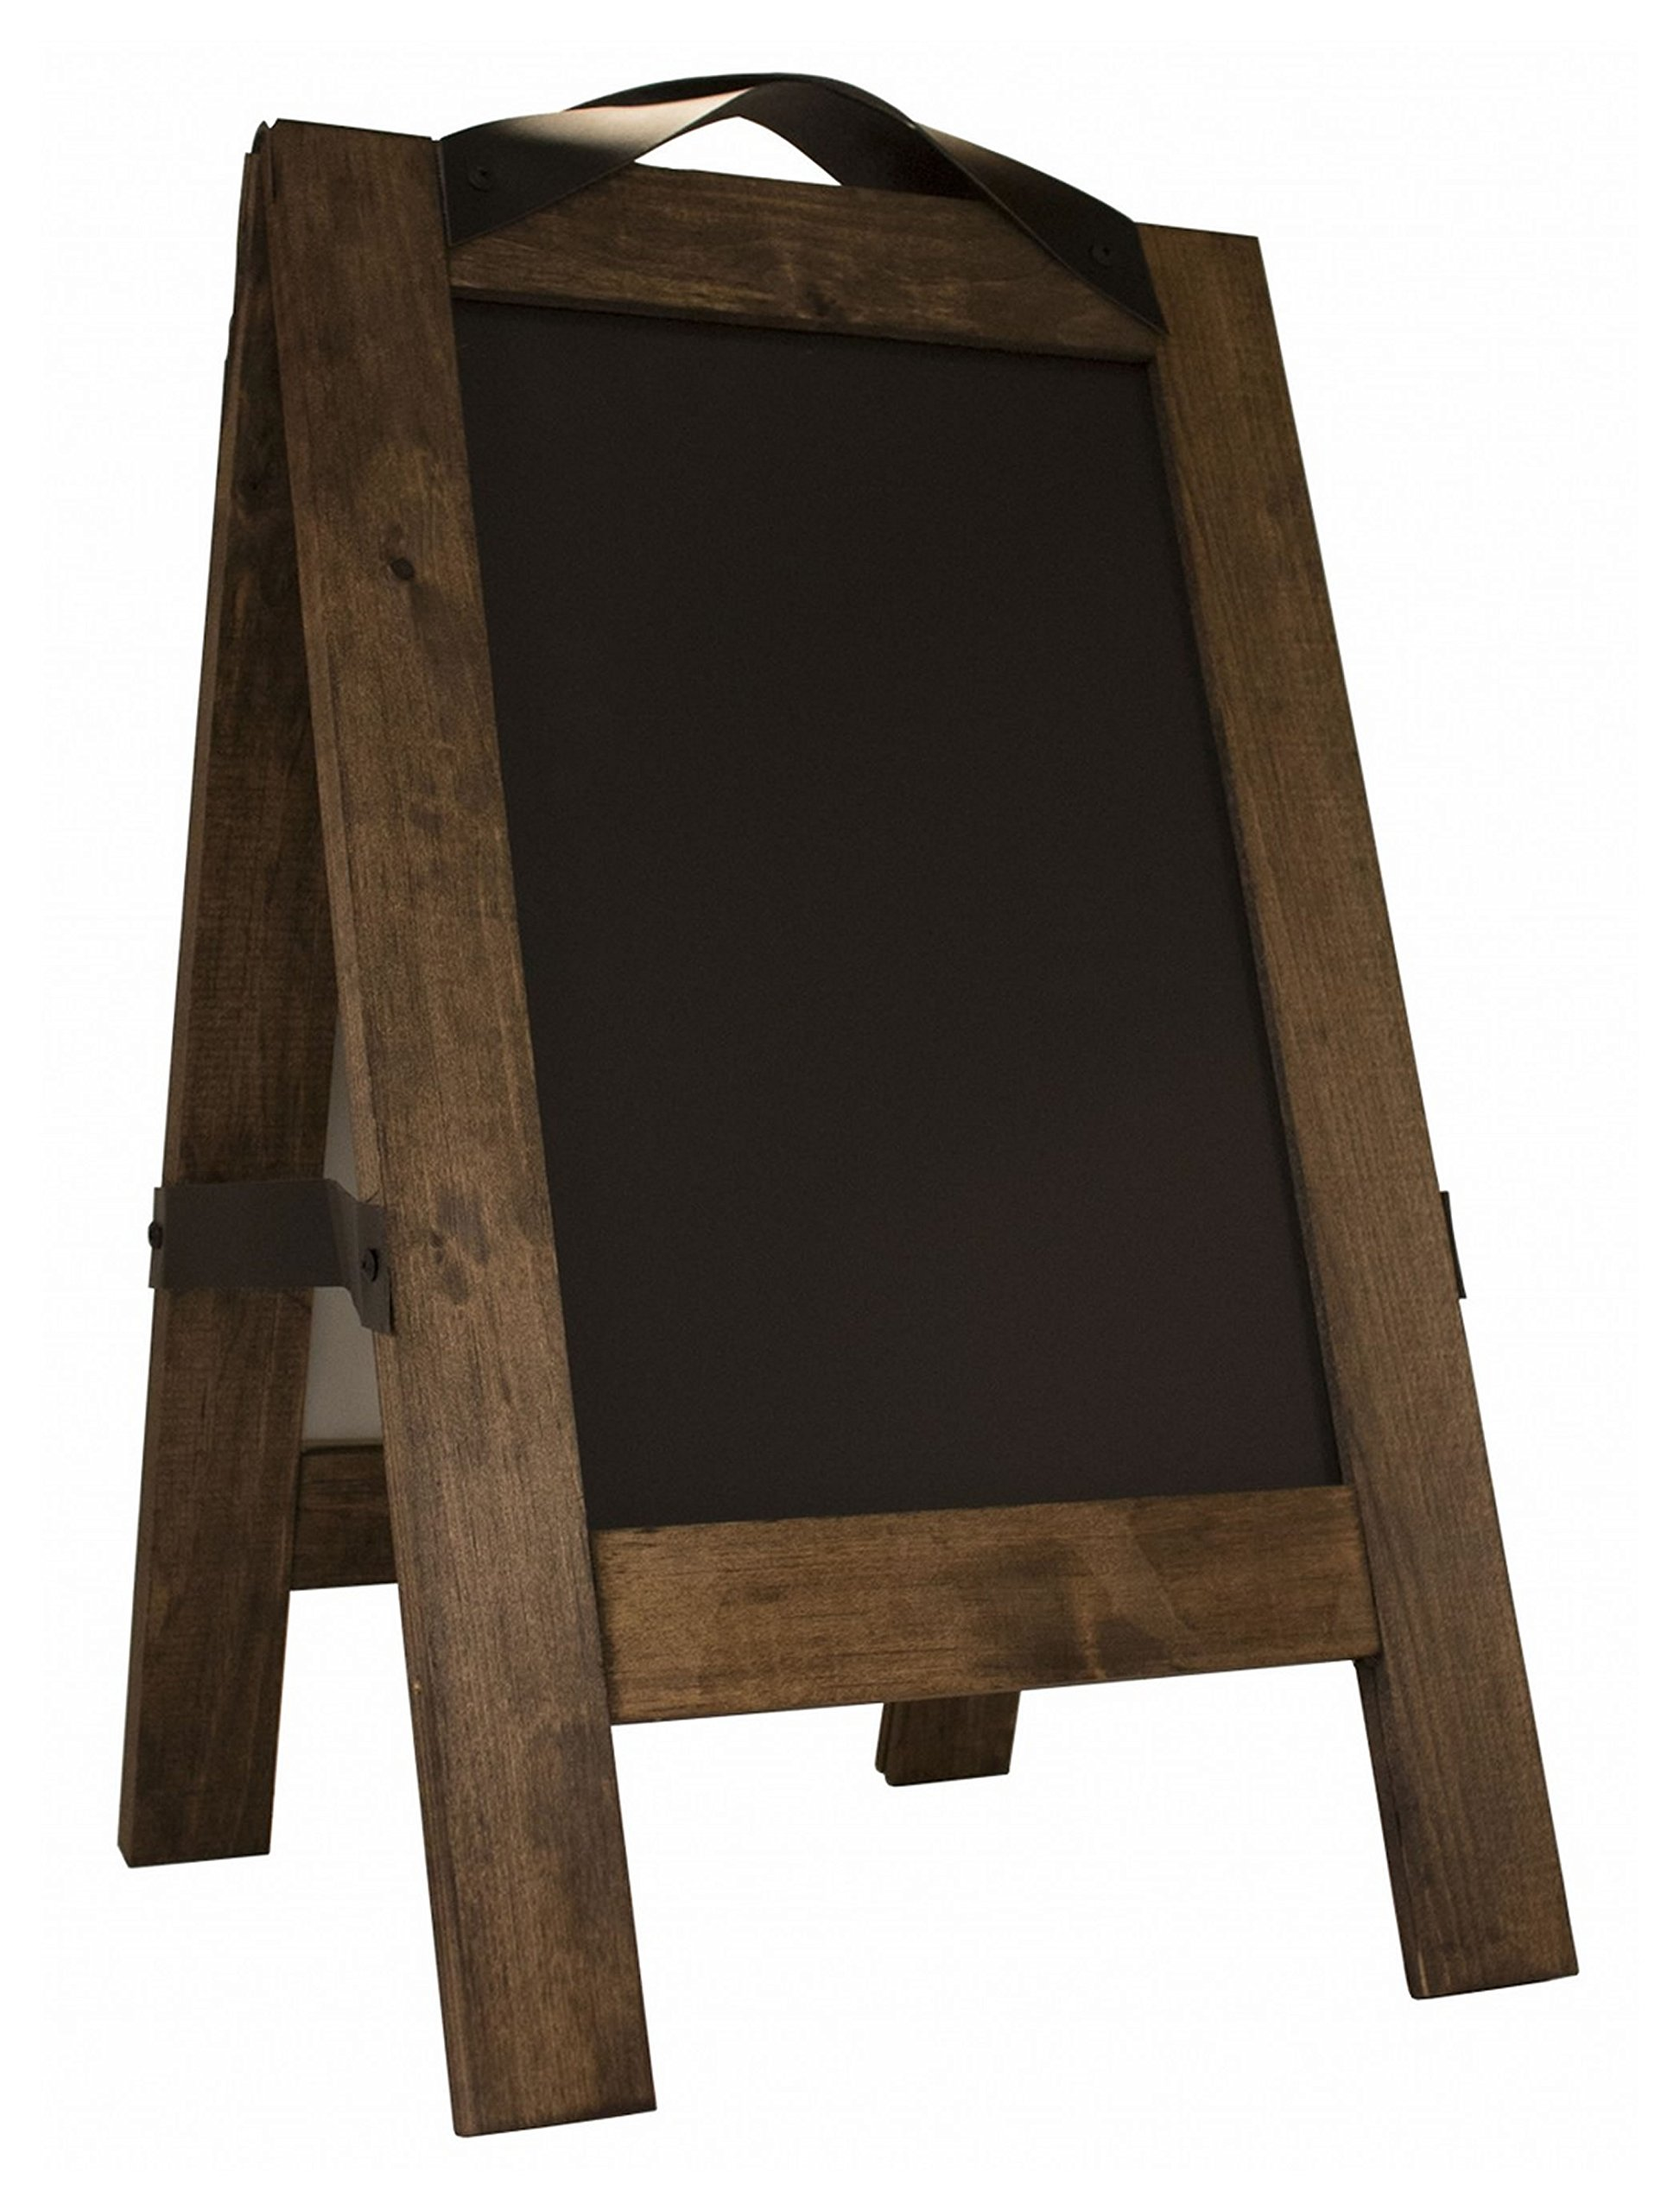 Restaurant A-Frame Sign-The Floor Talker-USA MADE-Two Magnetic Chalkboards on an A-Frame- Overall 16″ x 26″ -Chalk Board 11″ x 17″ -Includes white chisel tip marker. Type MenuCoverMan in Amazon search